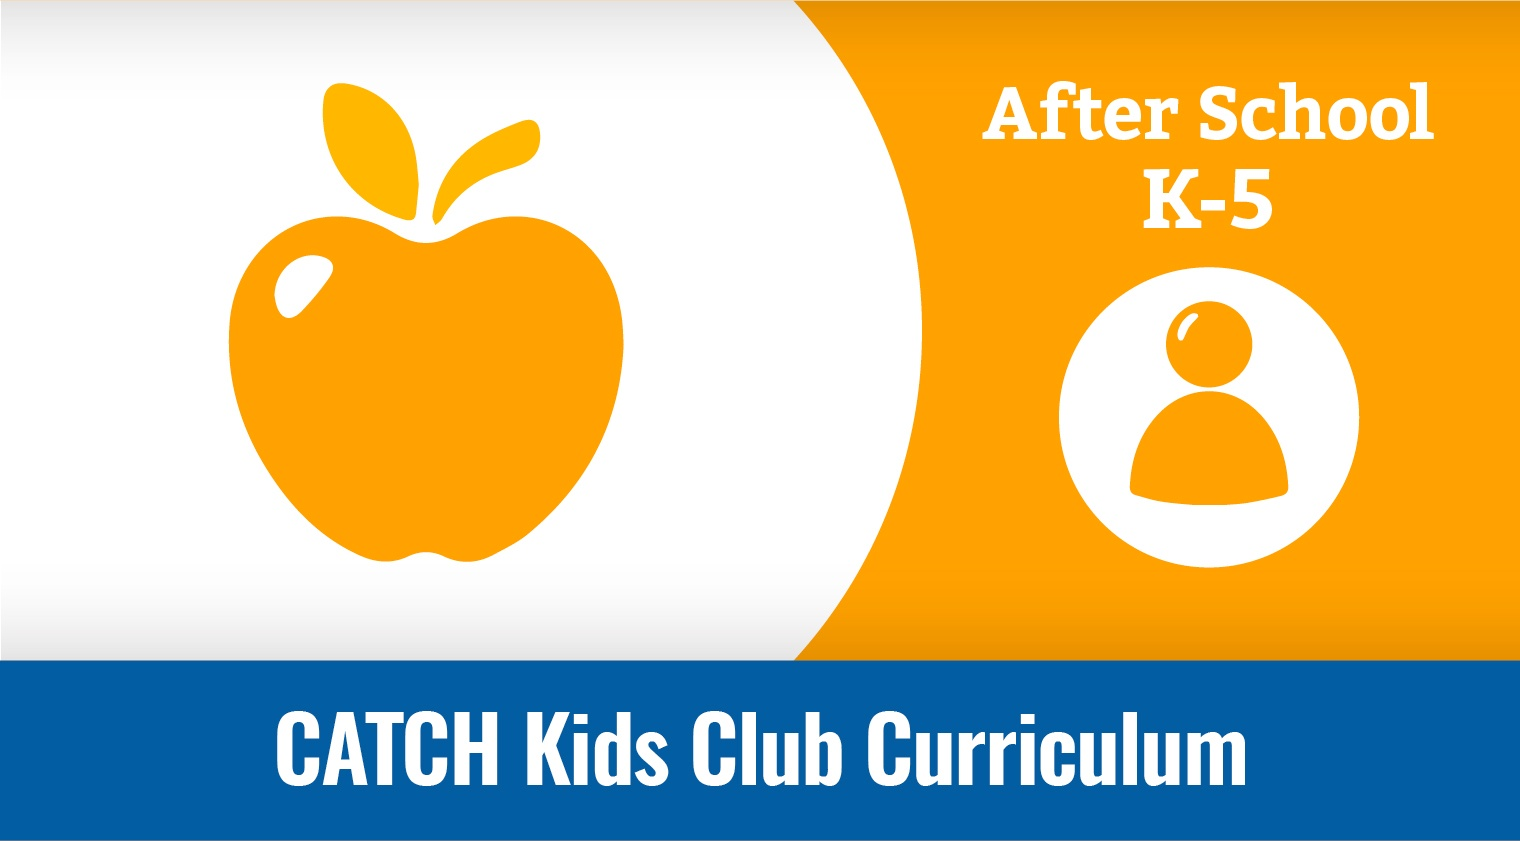 Adaptations: CATCH Kids Club Healthy Habits & Nutrition Manuals